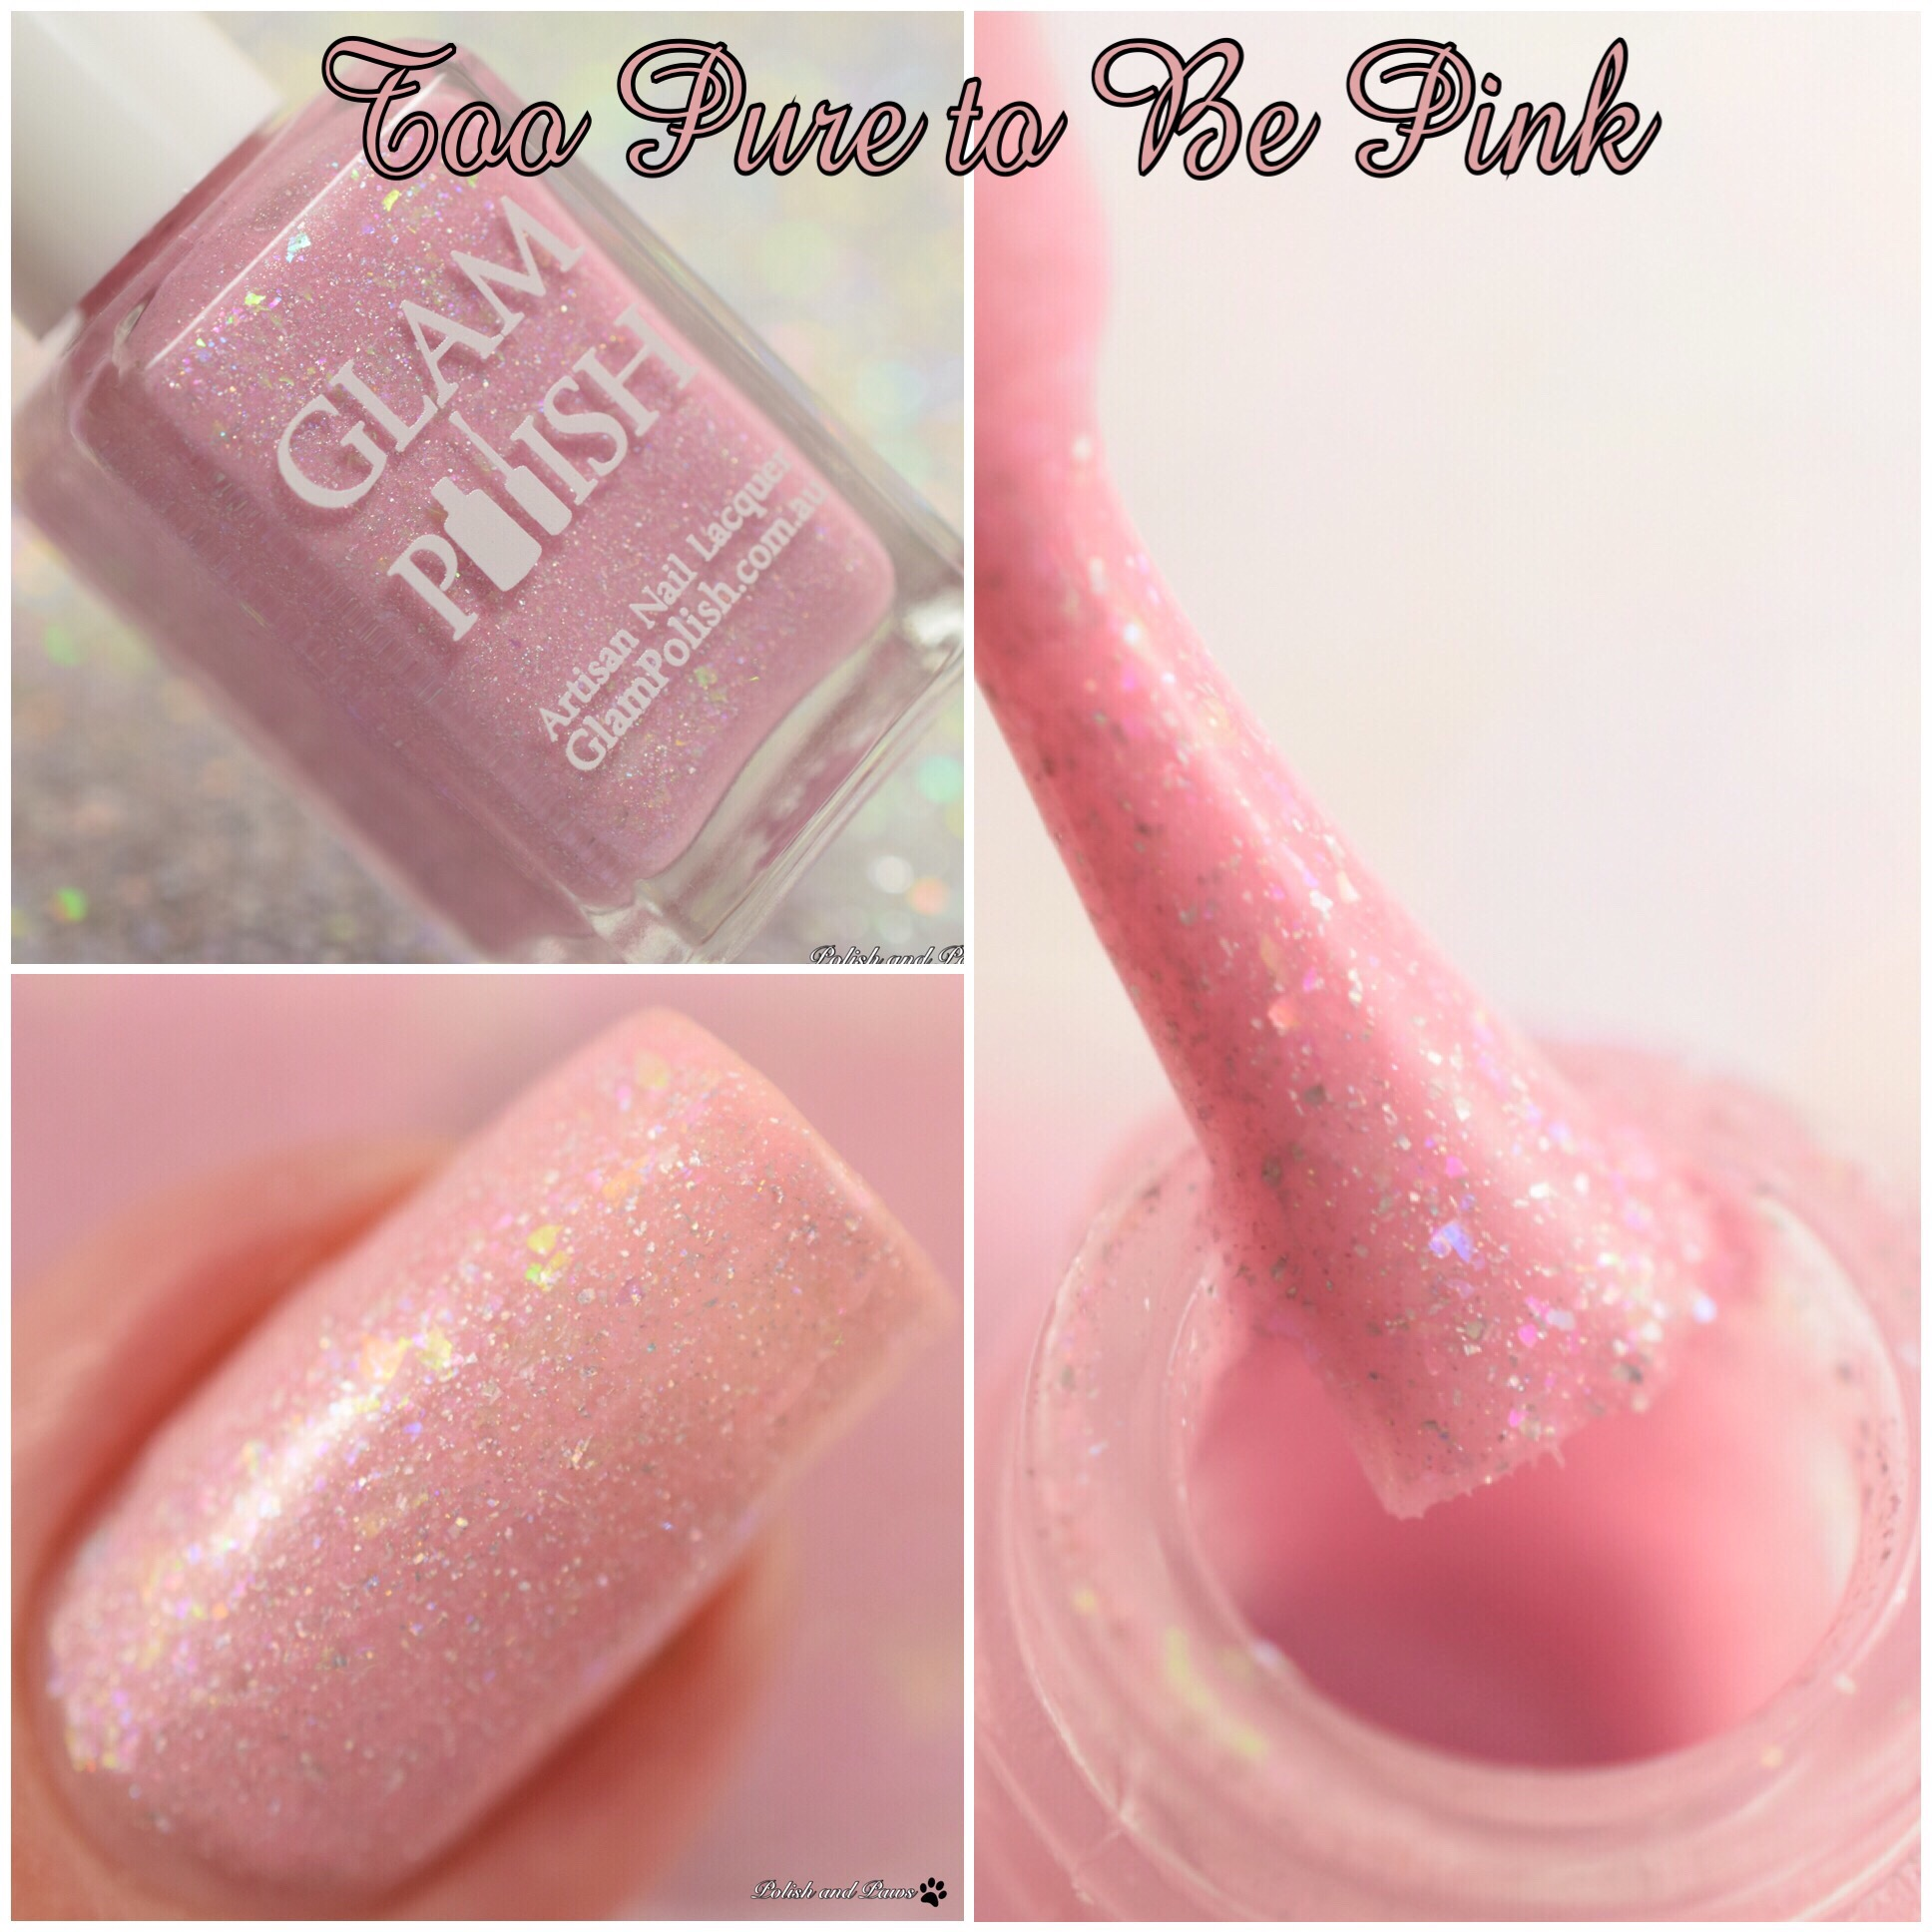 Glam Polish Too Pure to be Pink